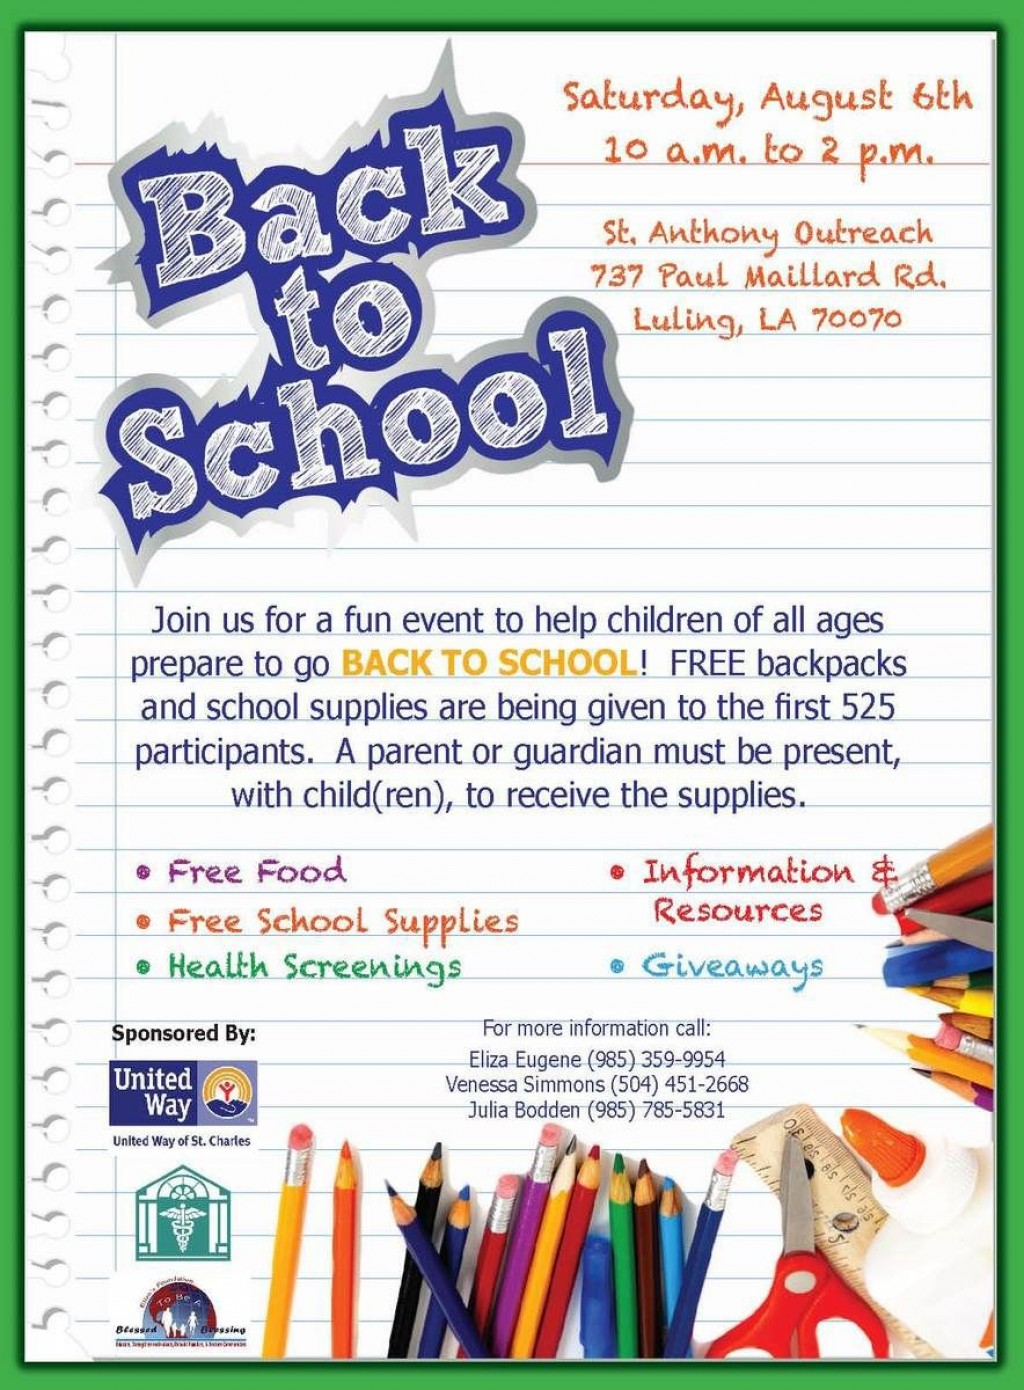 004 Amazing Free School Carnival Flyer Template Highest Quality  Templates DownloadLarge